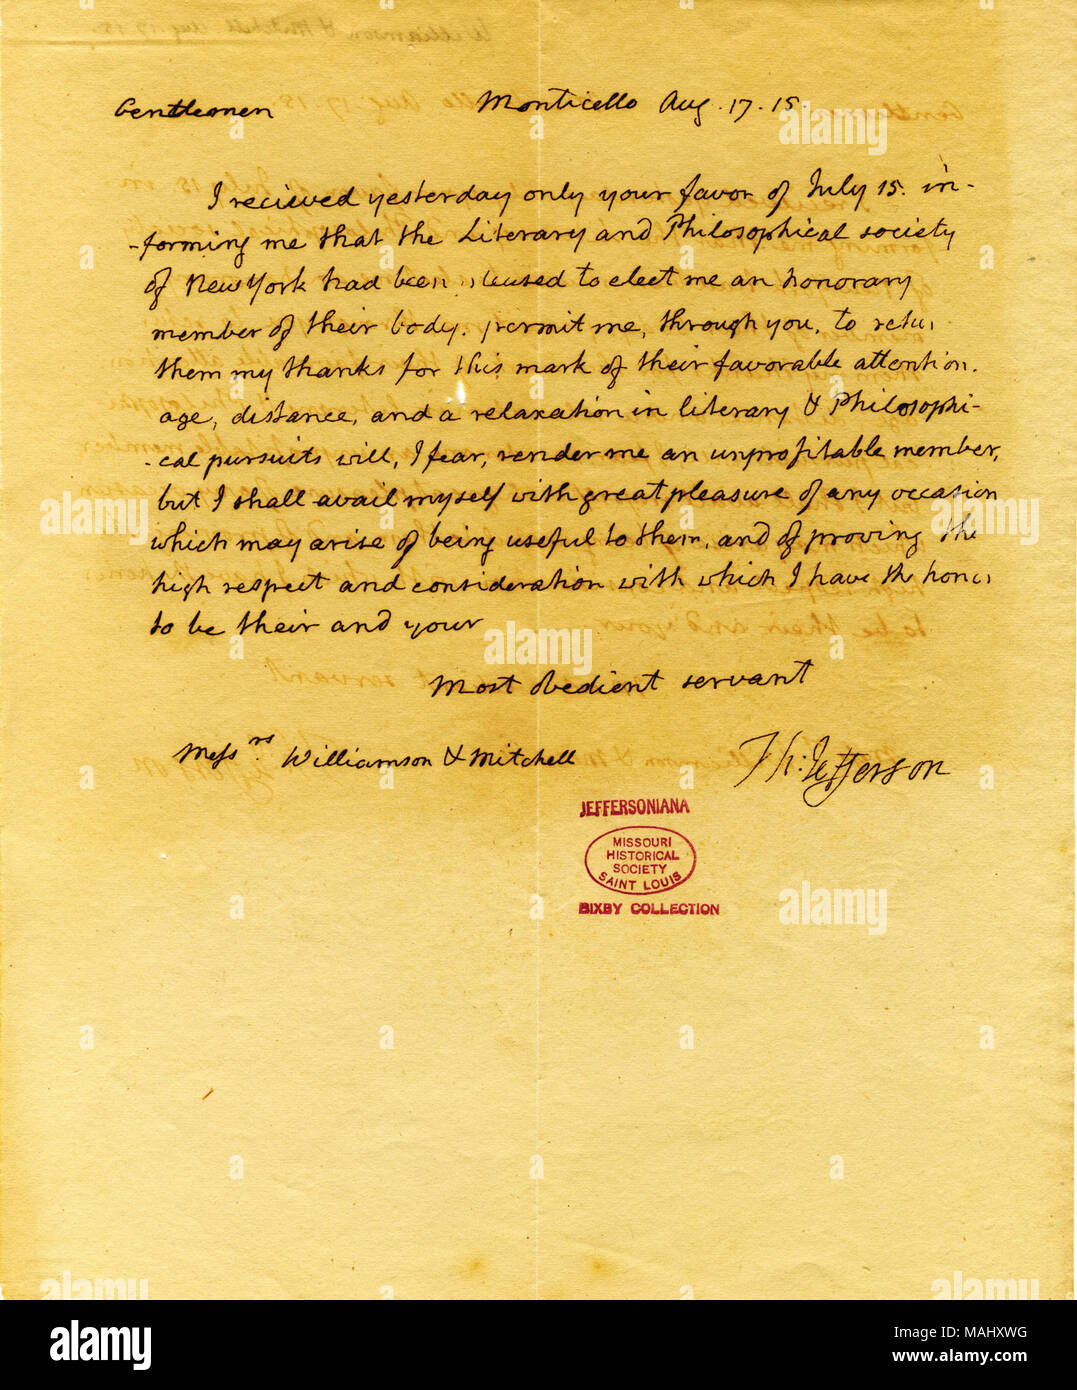 Thanks them for his honorary membership but fears he will be an unprofitable member. Title: Letter signed Thomas Jefferson, Monticello, to Mr. Williamson and Mr. Mitchell, August 17, 1815  . 17 August 1815. Jefferson, Thomas, 1743-1826 - Stock Image